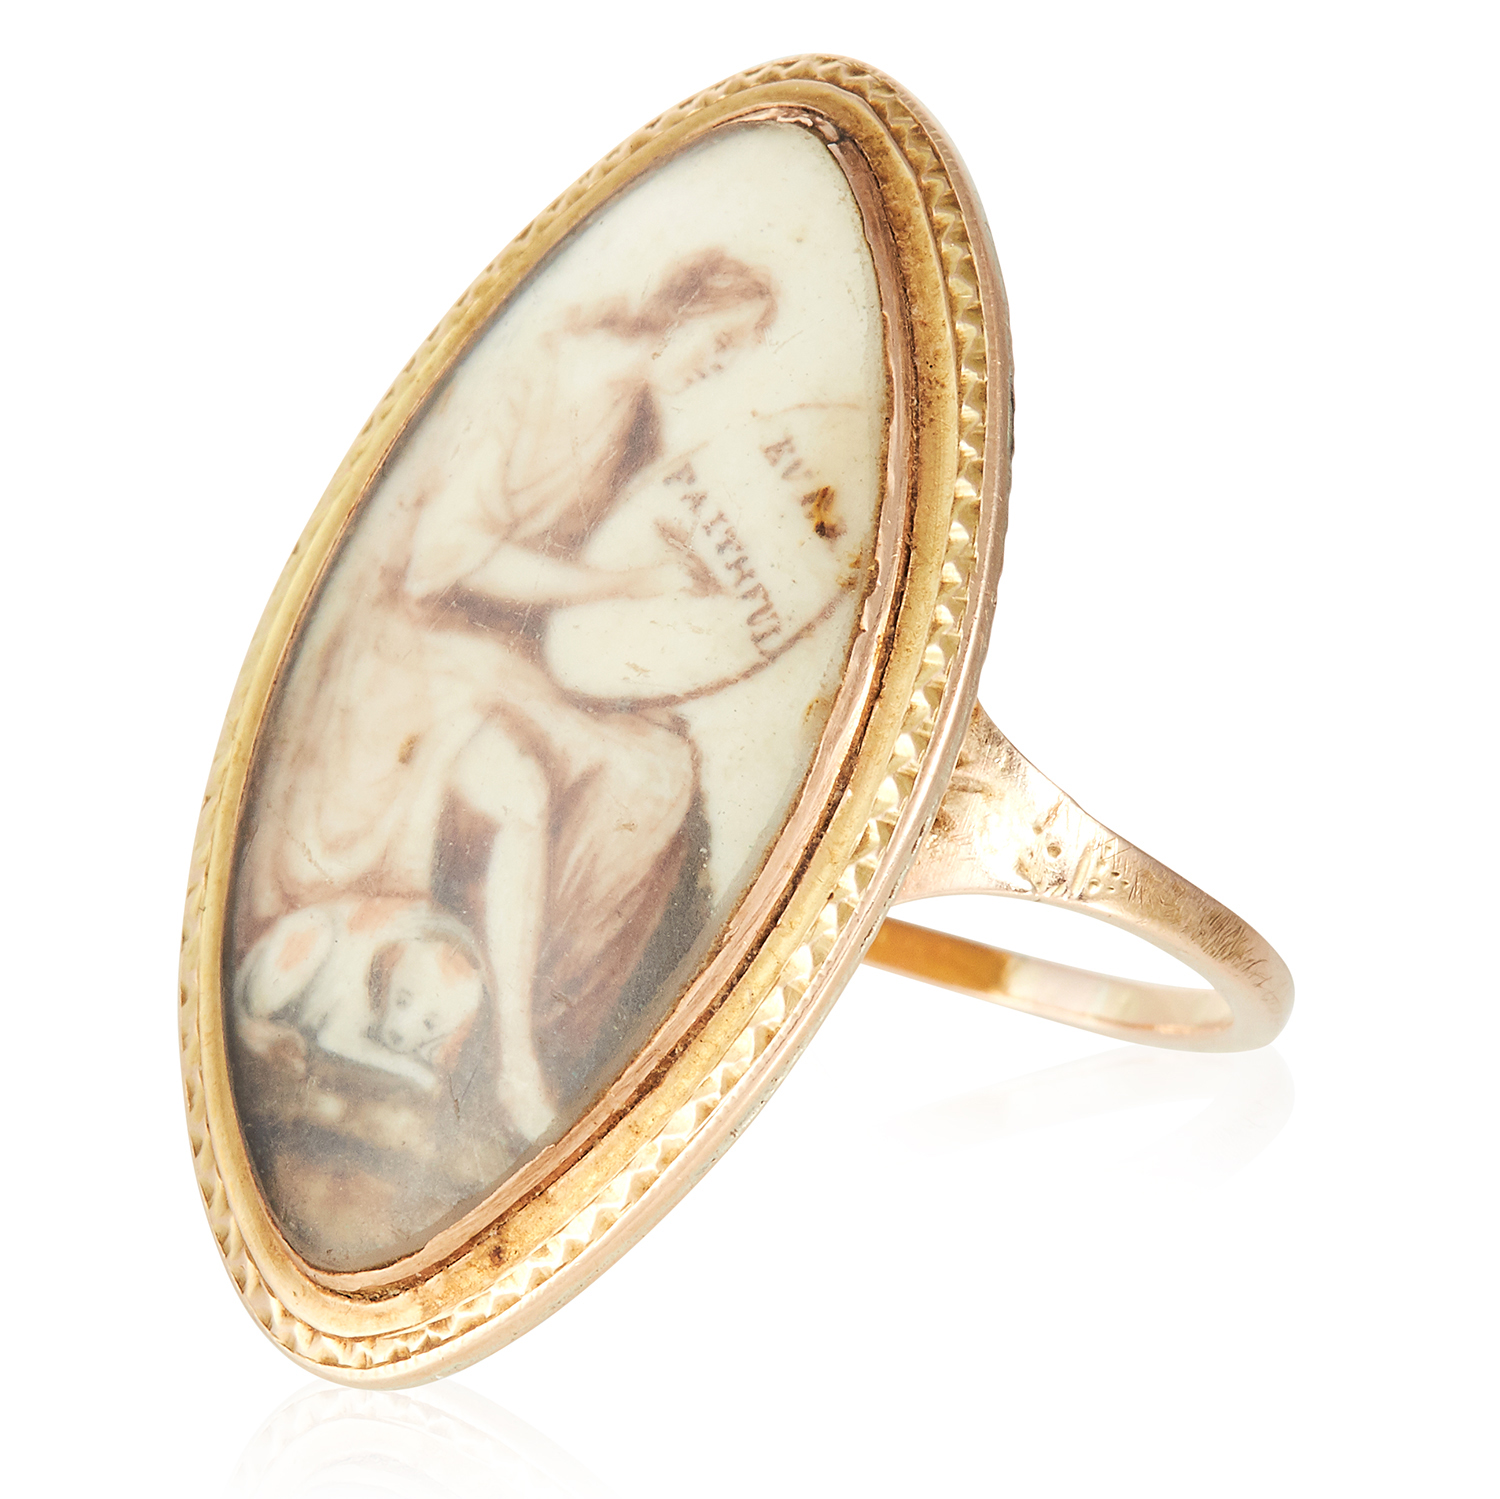 Los 34 - AN ANTIQUE PORTRAIT MINIATURE MOURNING RING, CIRCA 1780 in high carat yellow gold, of navette form